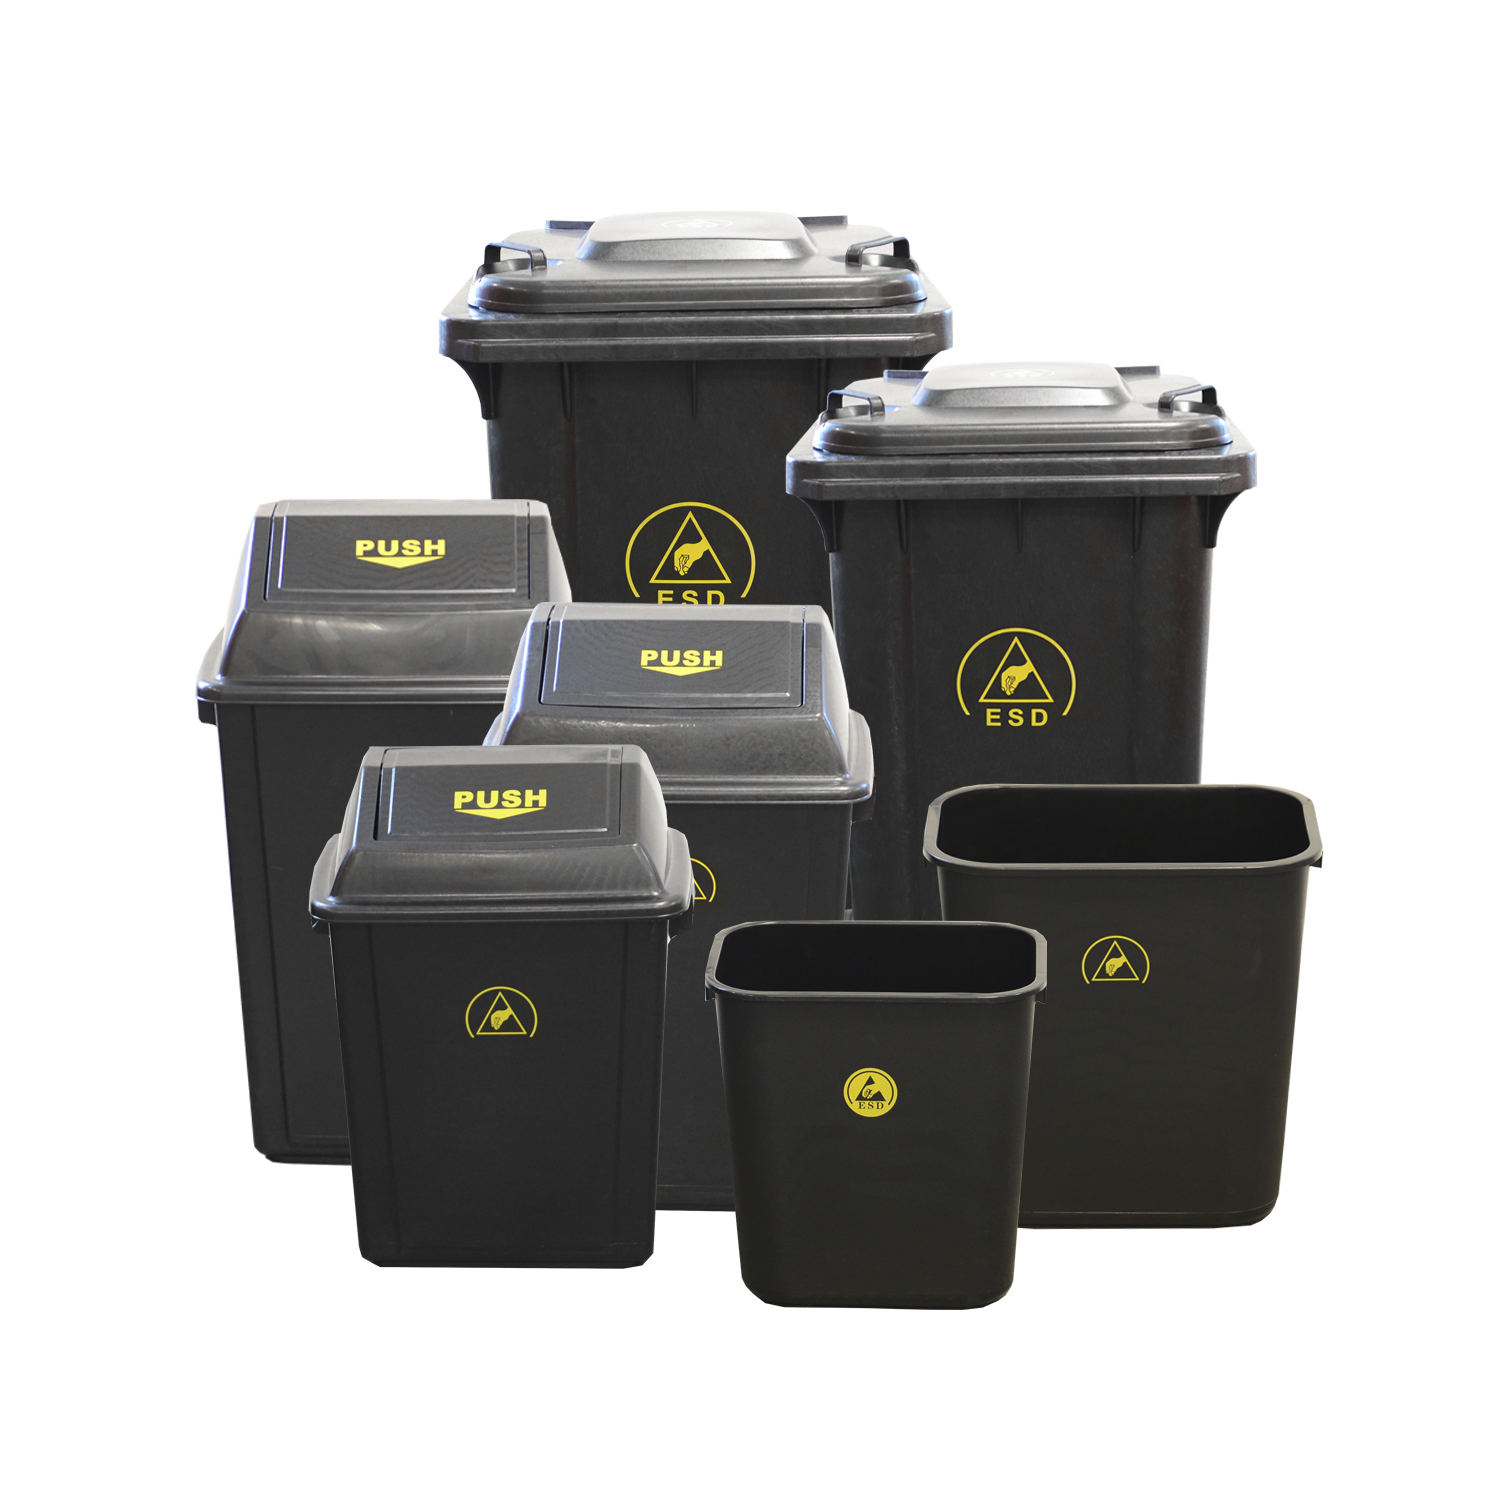 Antistatic Waste Bins